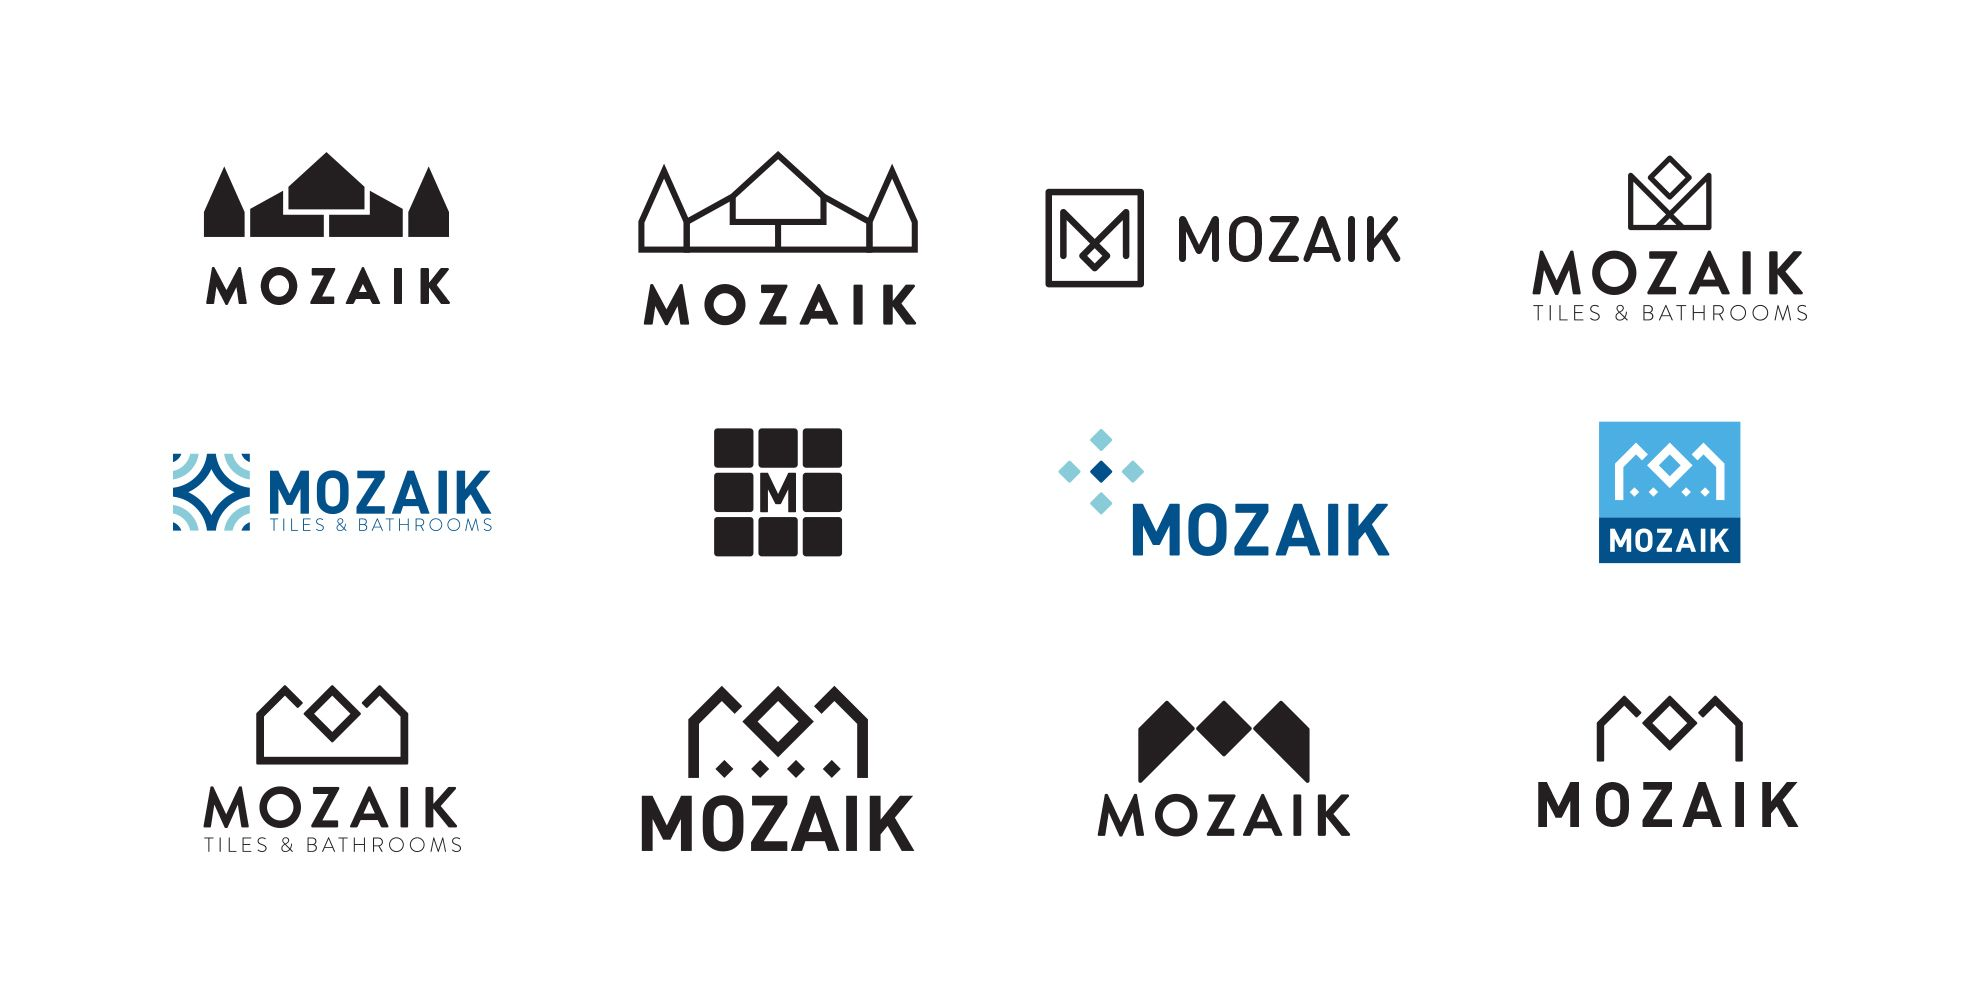 Mozaik logo first concepts